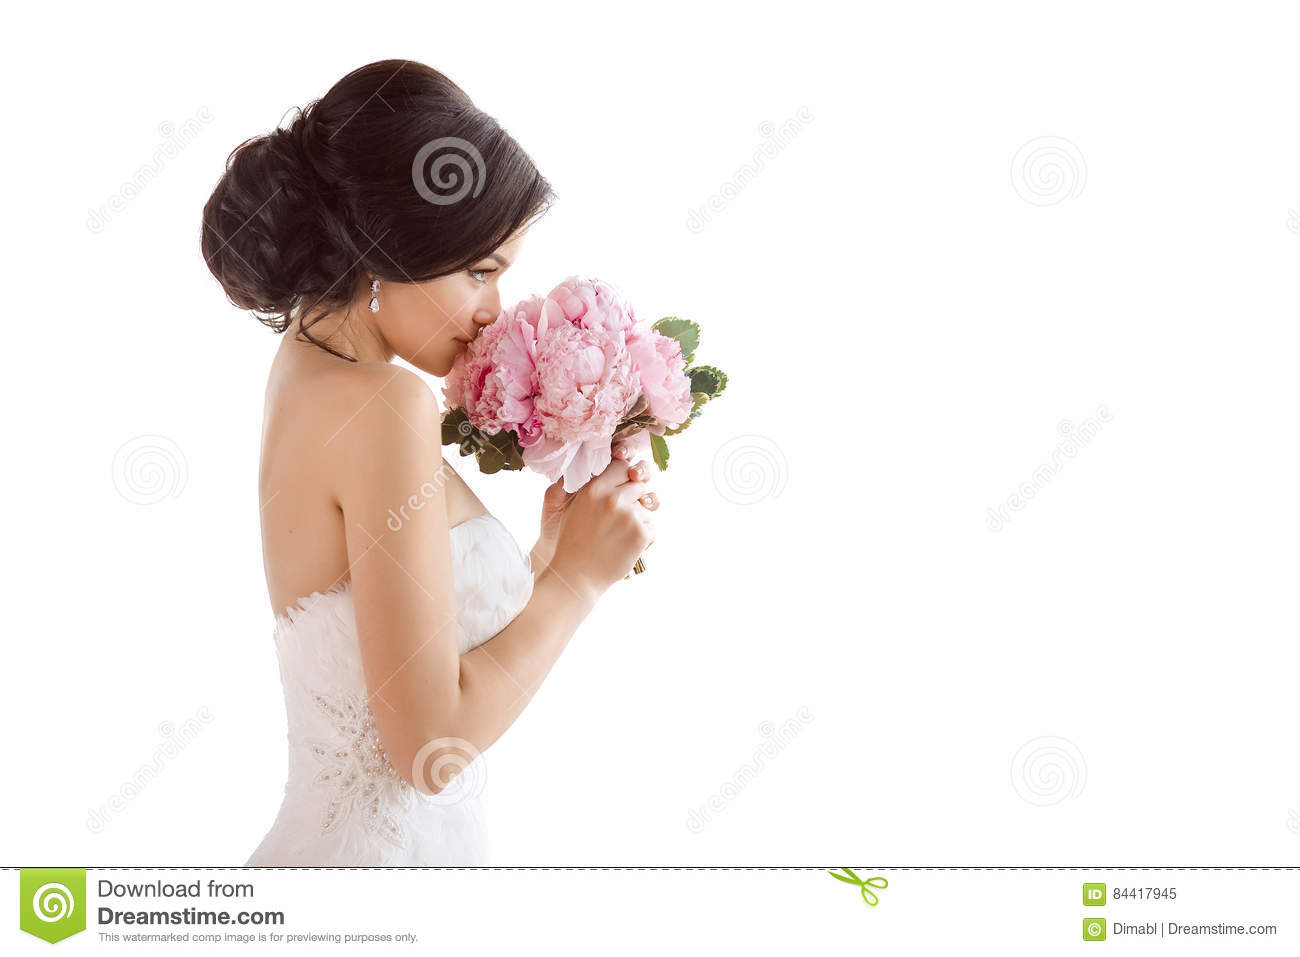 Beautiful bride with her flowers. Wedding hairstyle make-up luxury fashion dress and bouquet